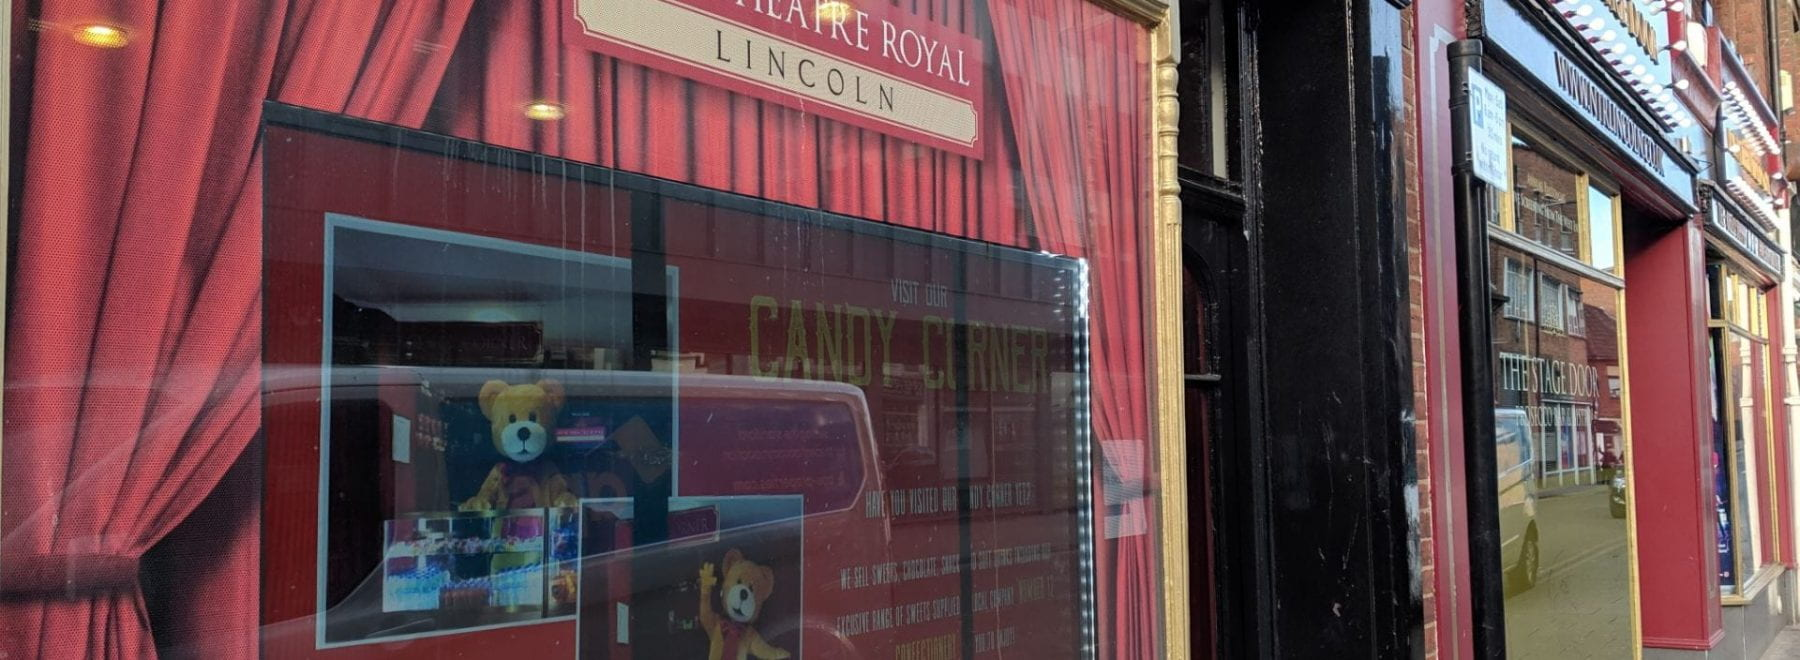 The New Theatre Royal with an electronic screen in the window